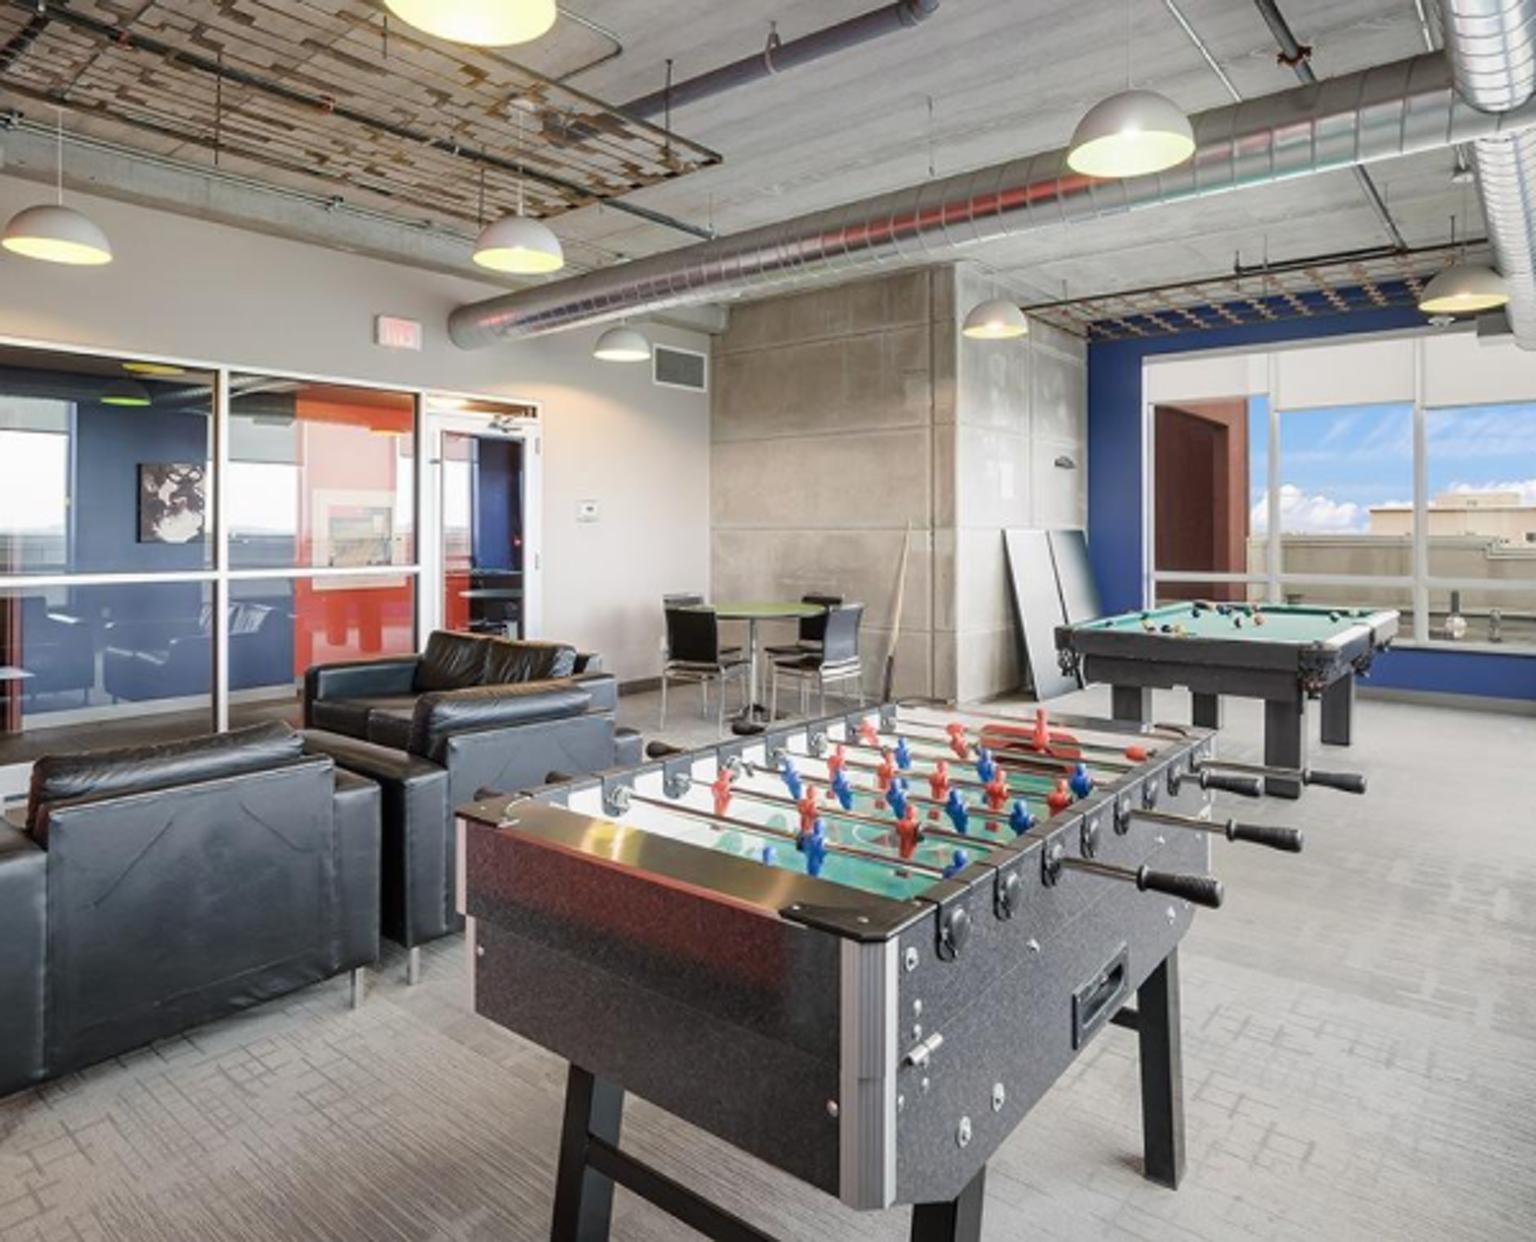 Games room with couches, foosball and pool table